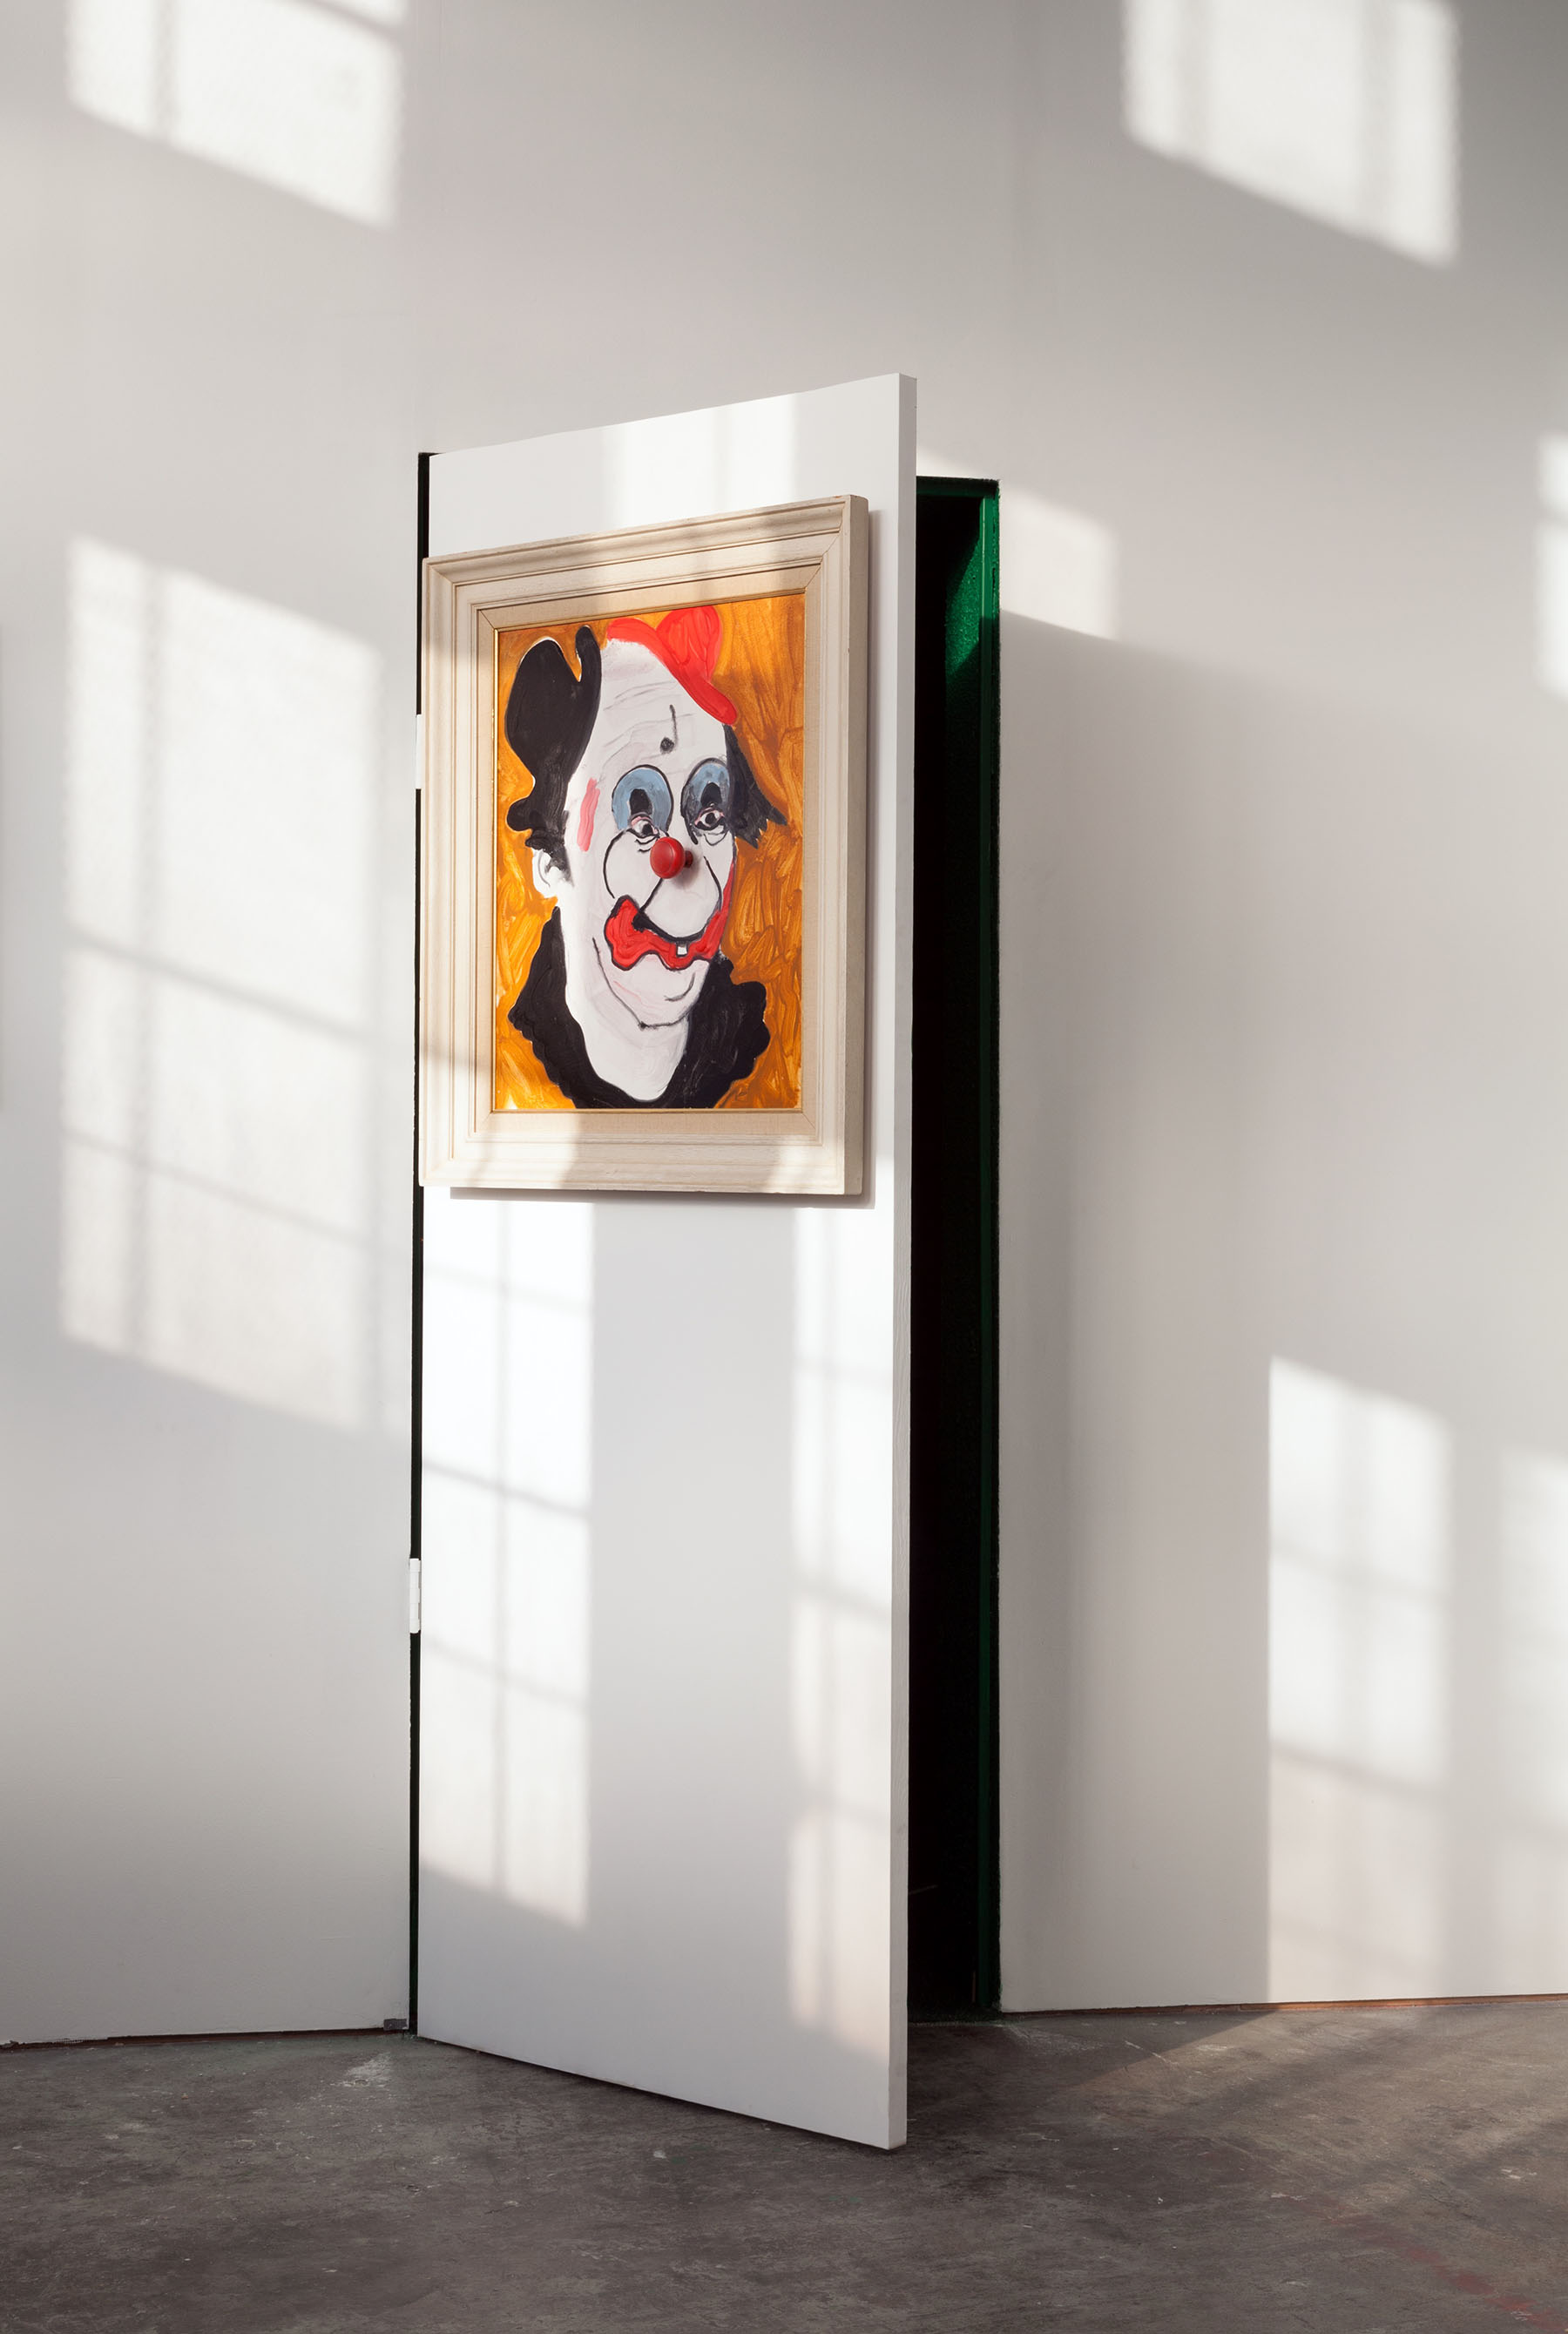 Artist Oliver Sweet created the Tickles Door Painting.